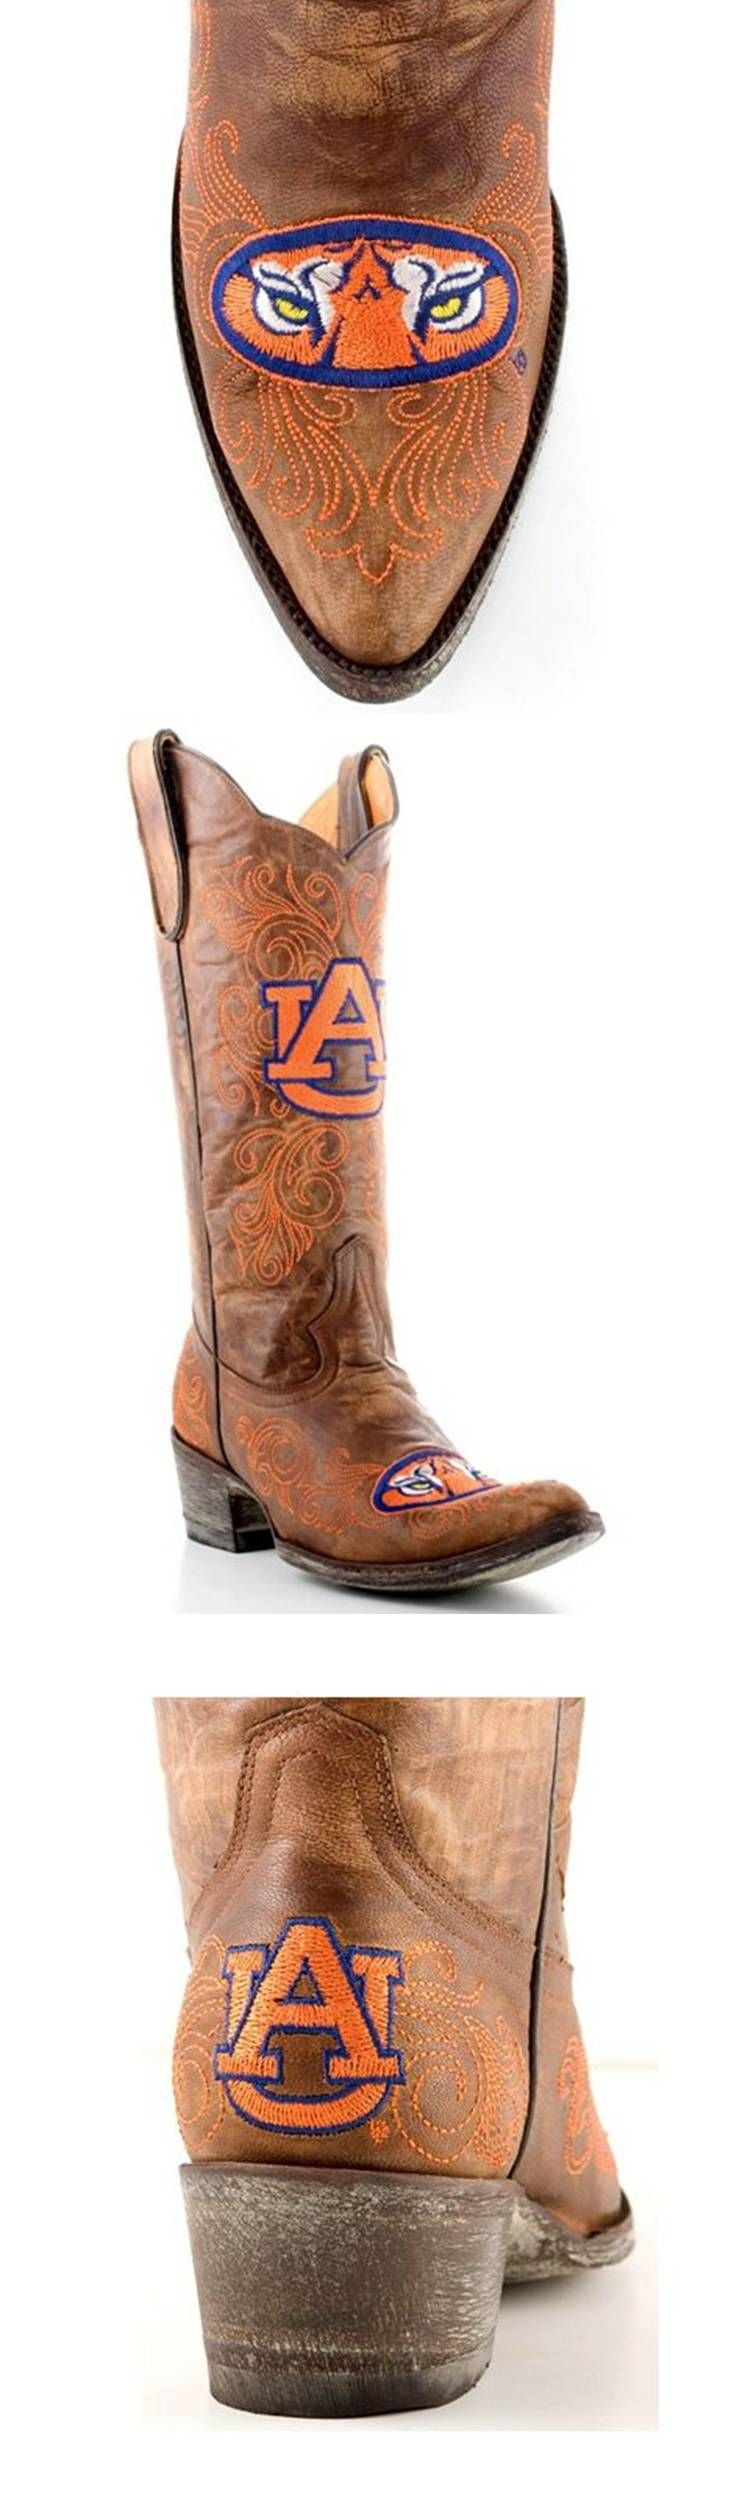 883a3903ce8 Auburn University Tigers - distressed pointed toe cowboy / cowgirl ...